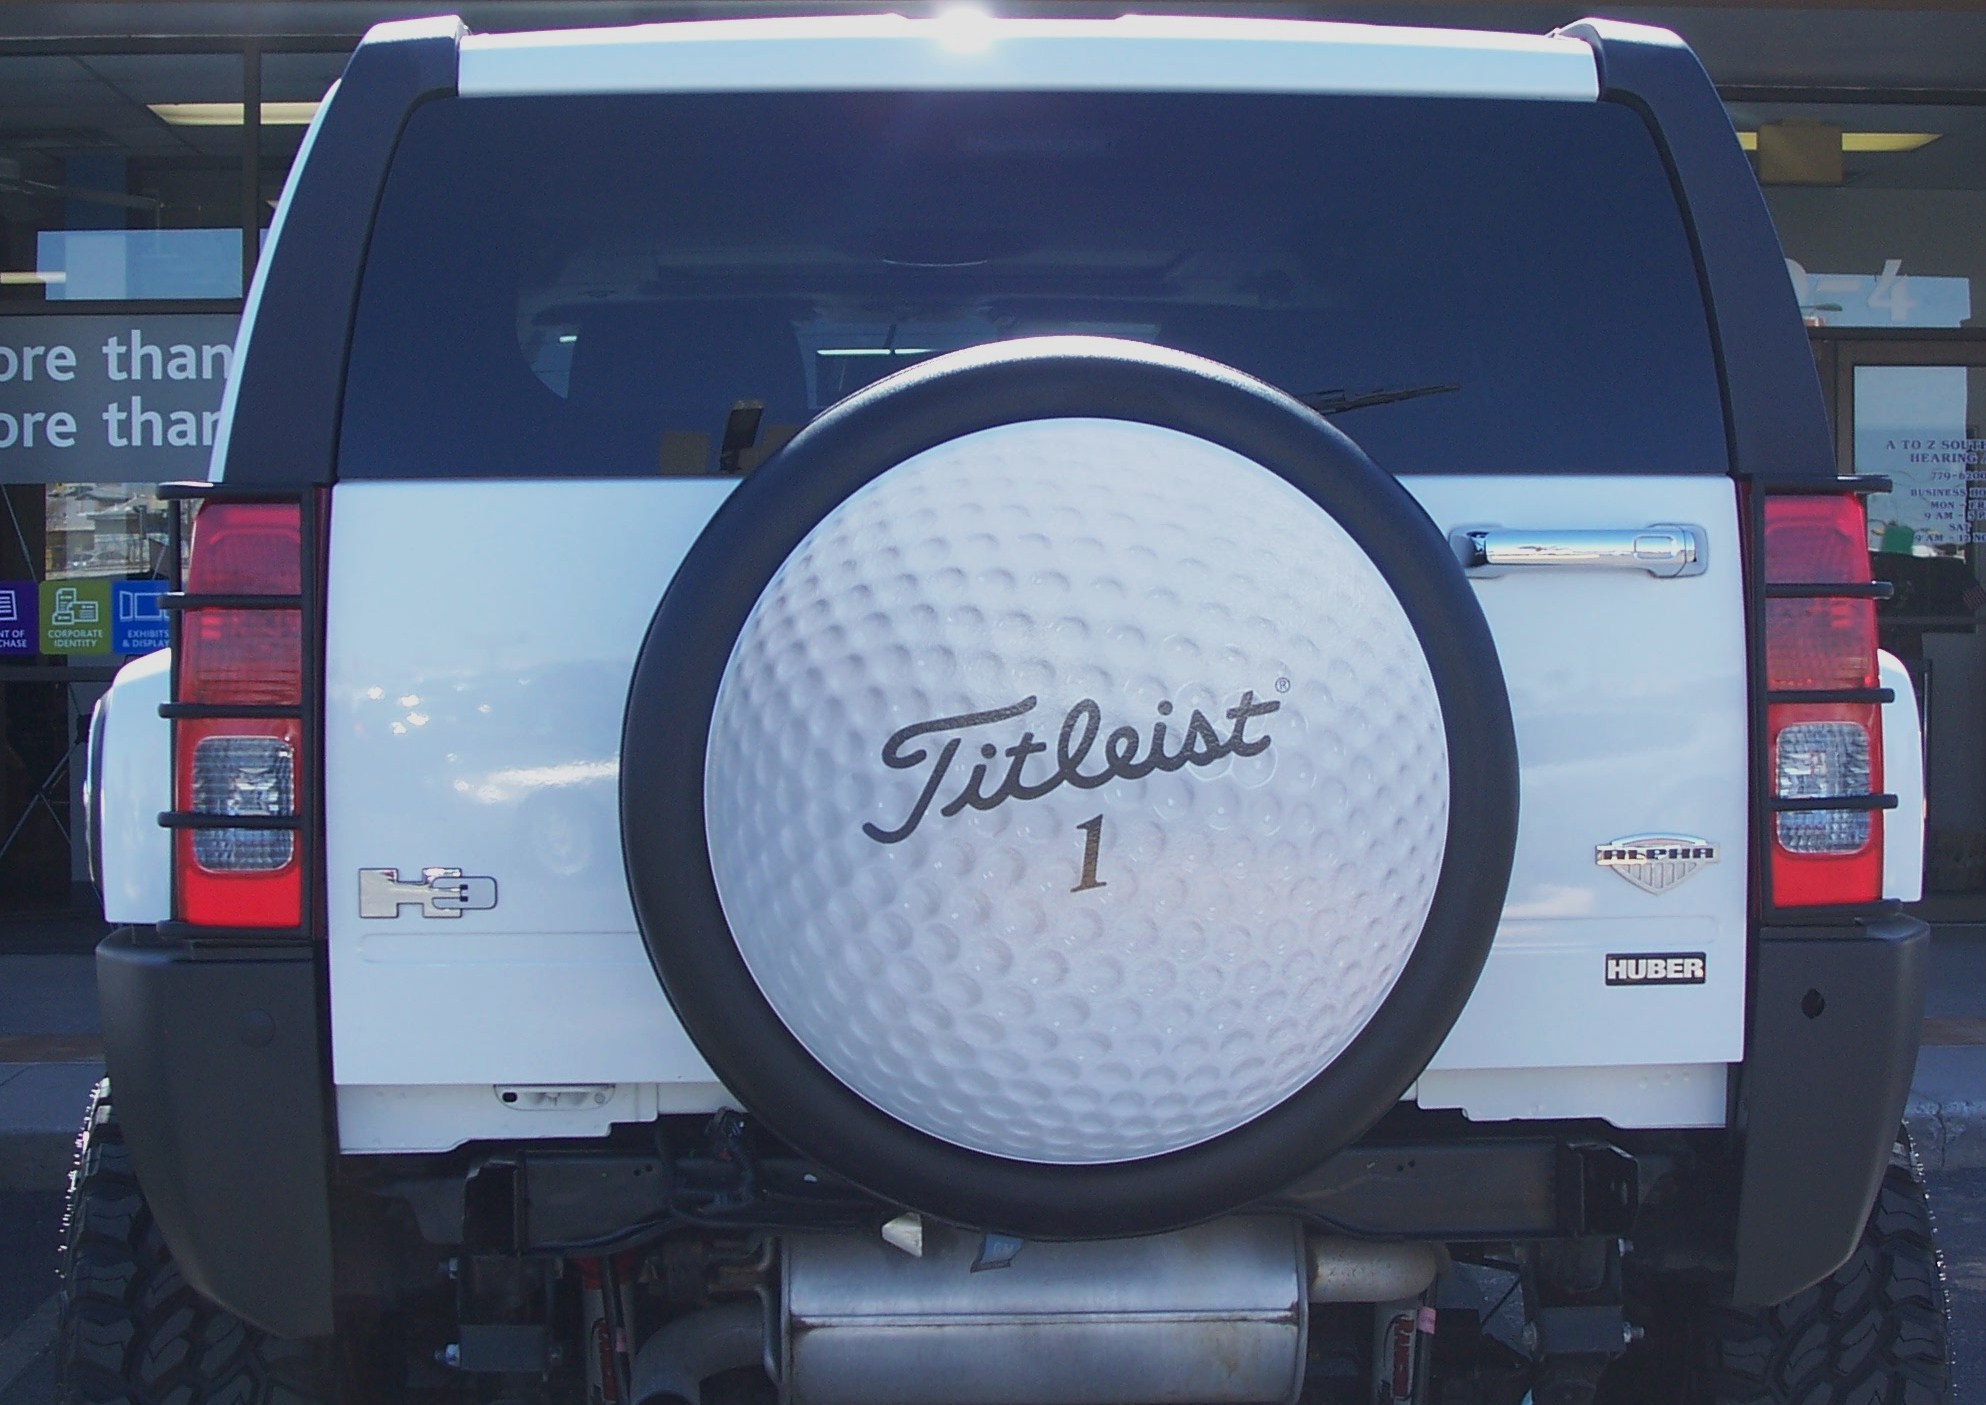 Hole in e with a Custom Golf Ball Print on a Tire Cover